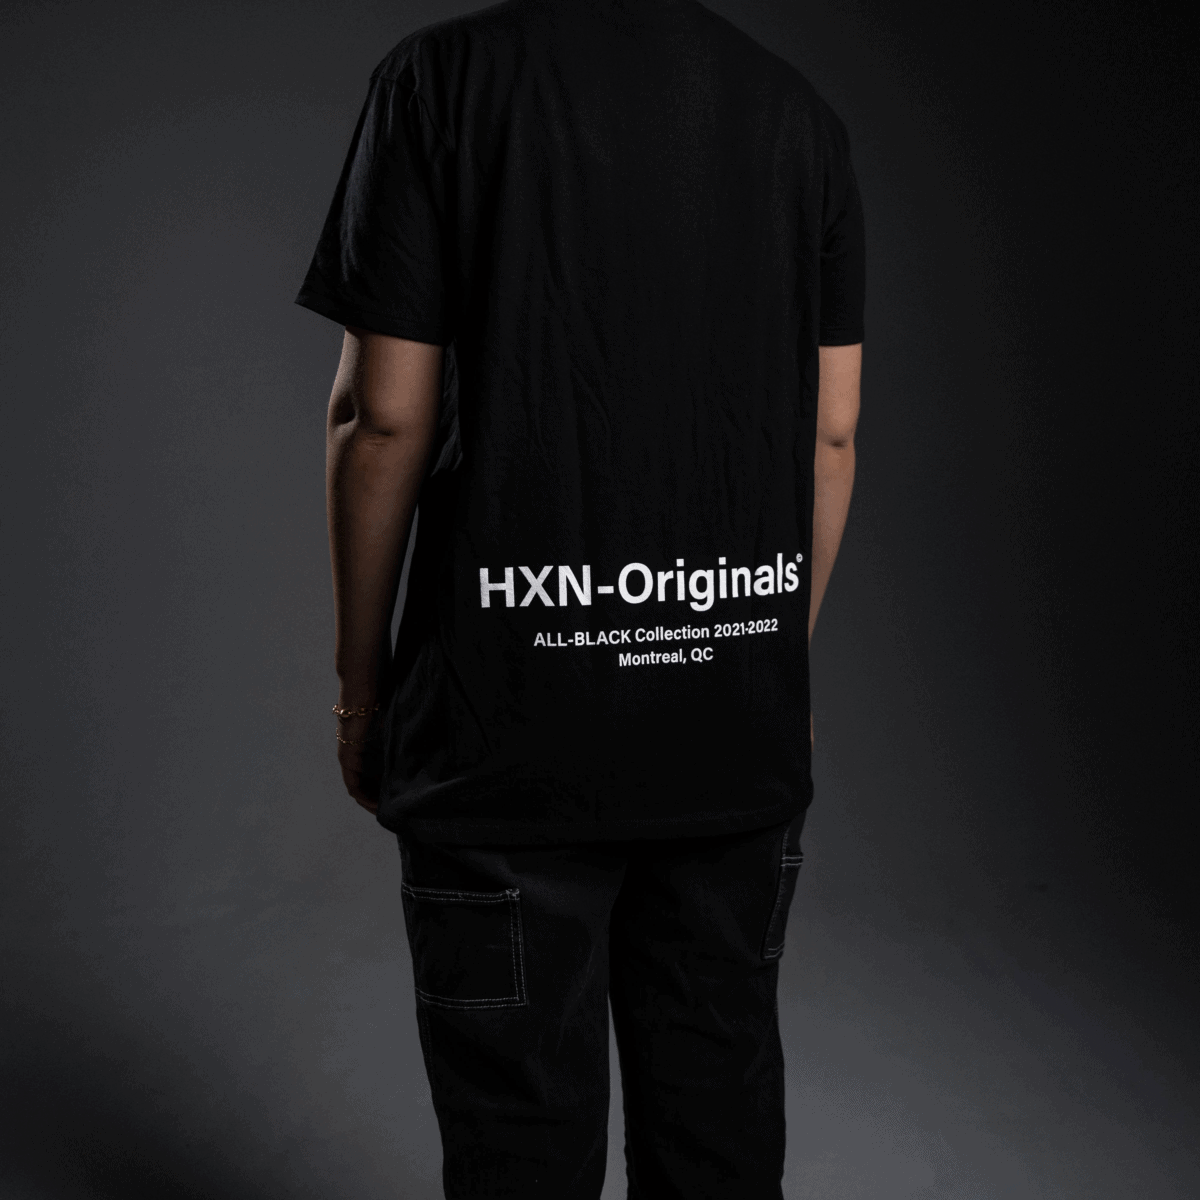 fresh out the factory t shirt back 2 hxn media